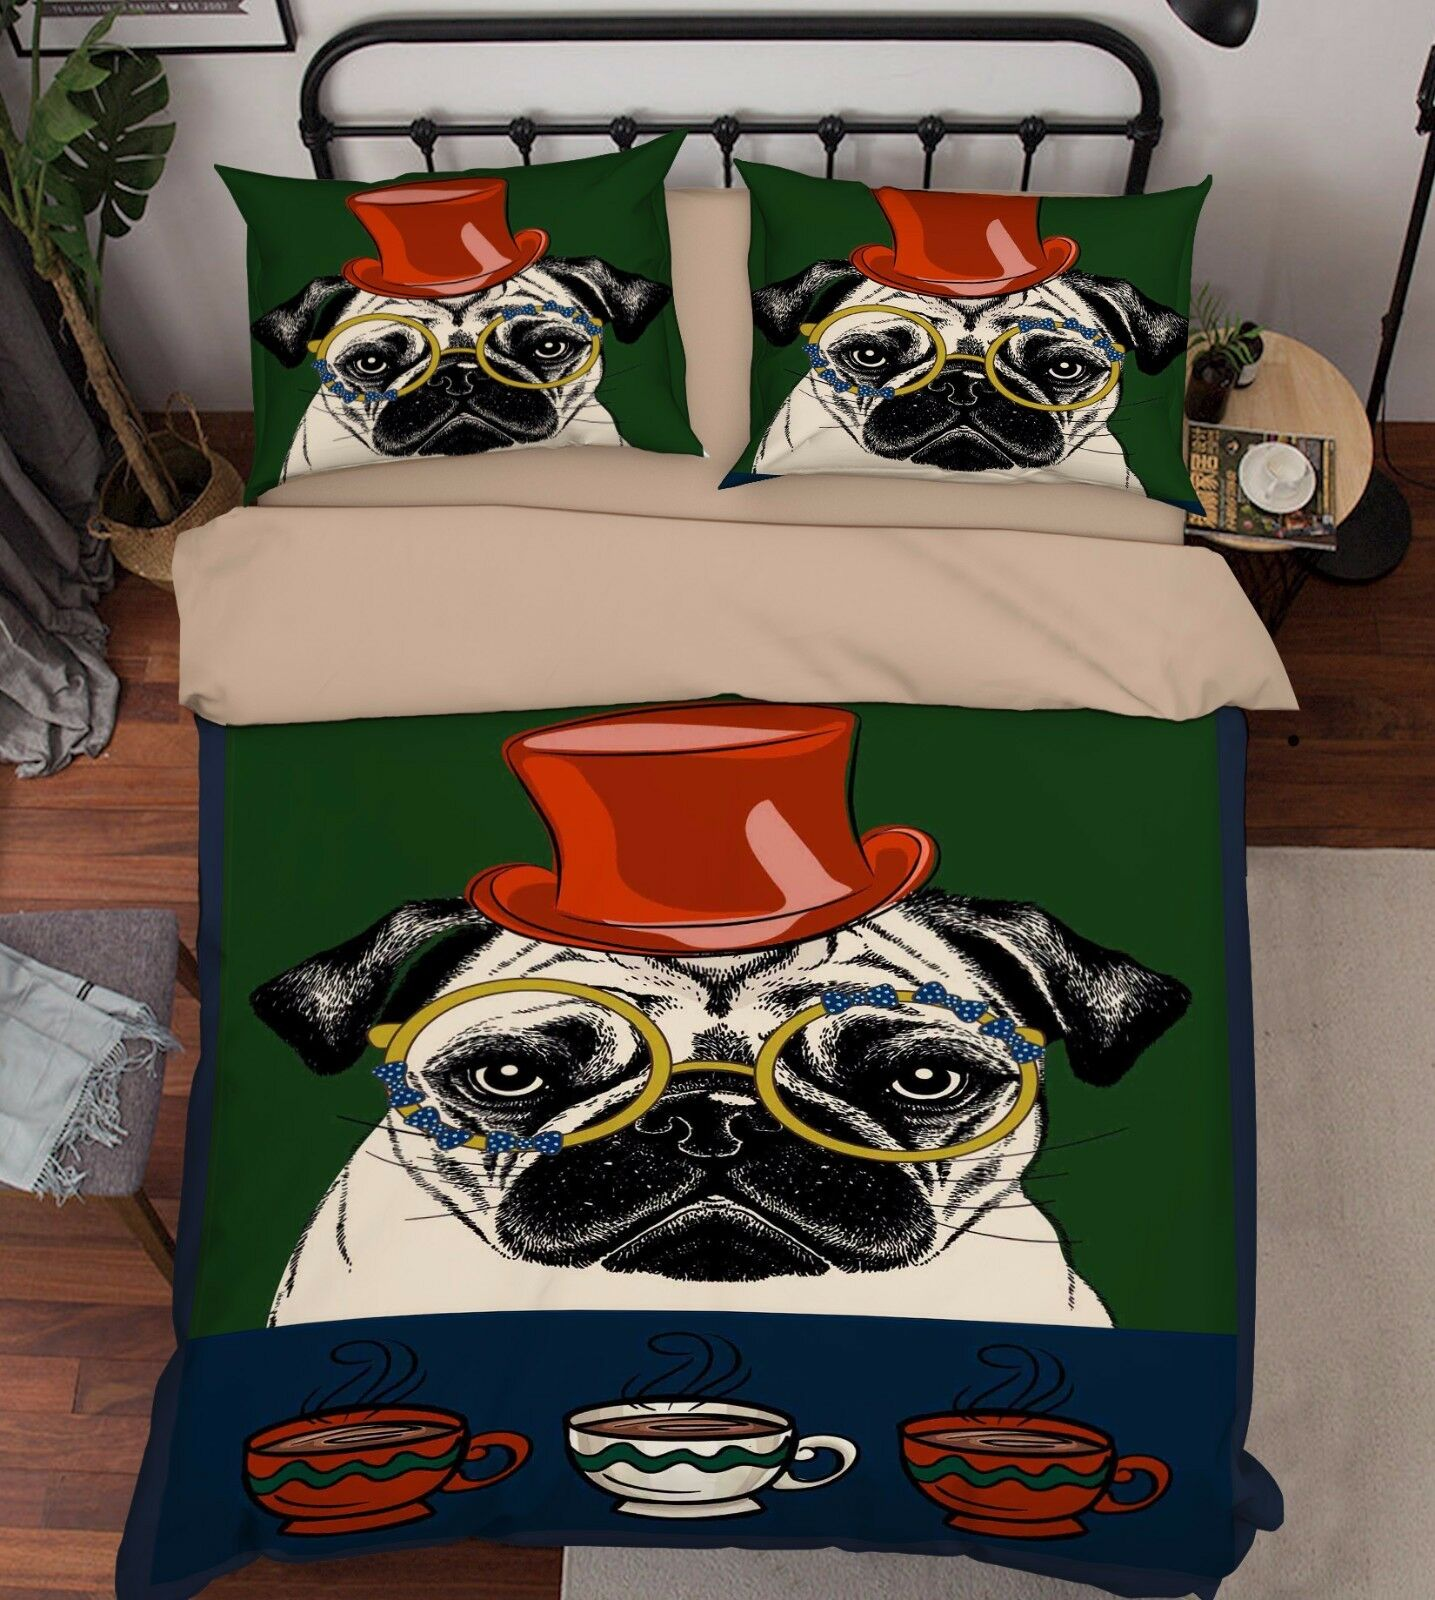 3D Painted Dog 907 Bed Pillowcases Quilt Duvet Cover Set Single Queen UK Summer